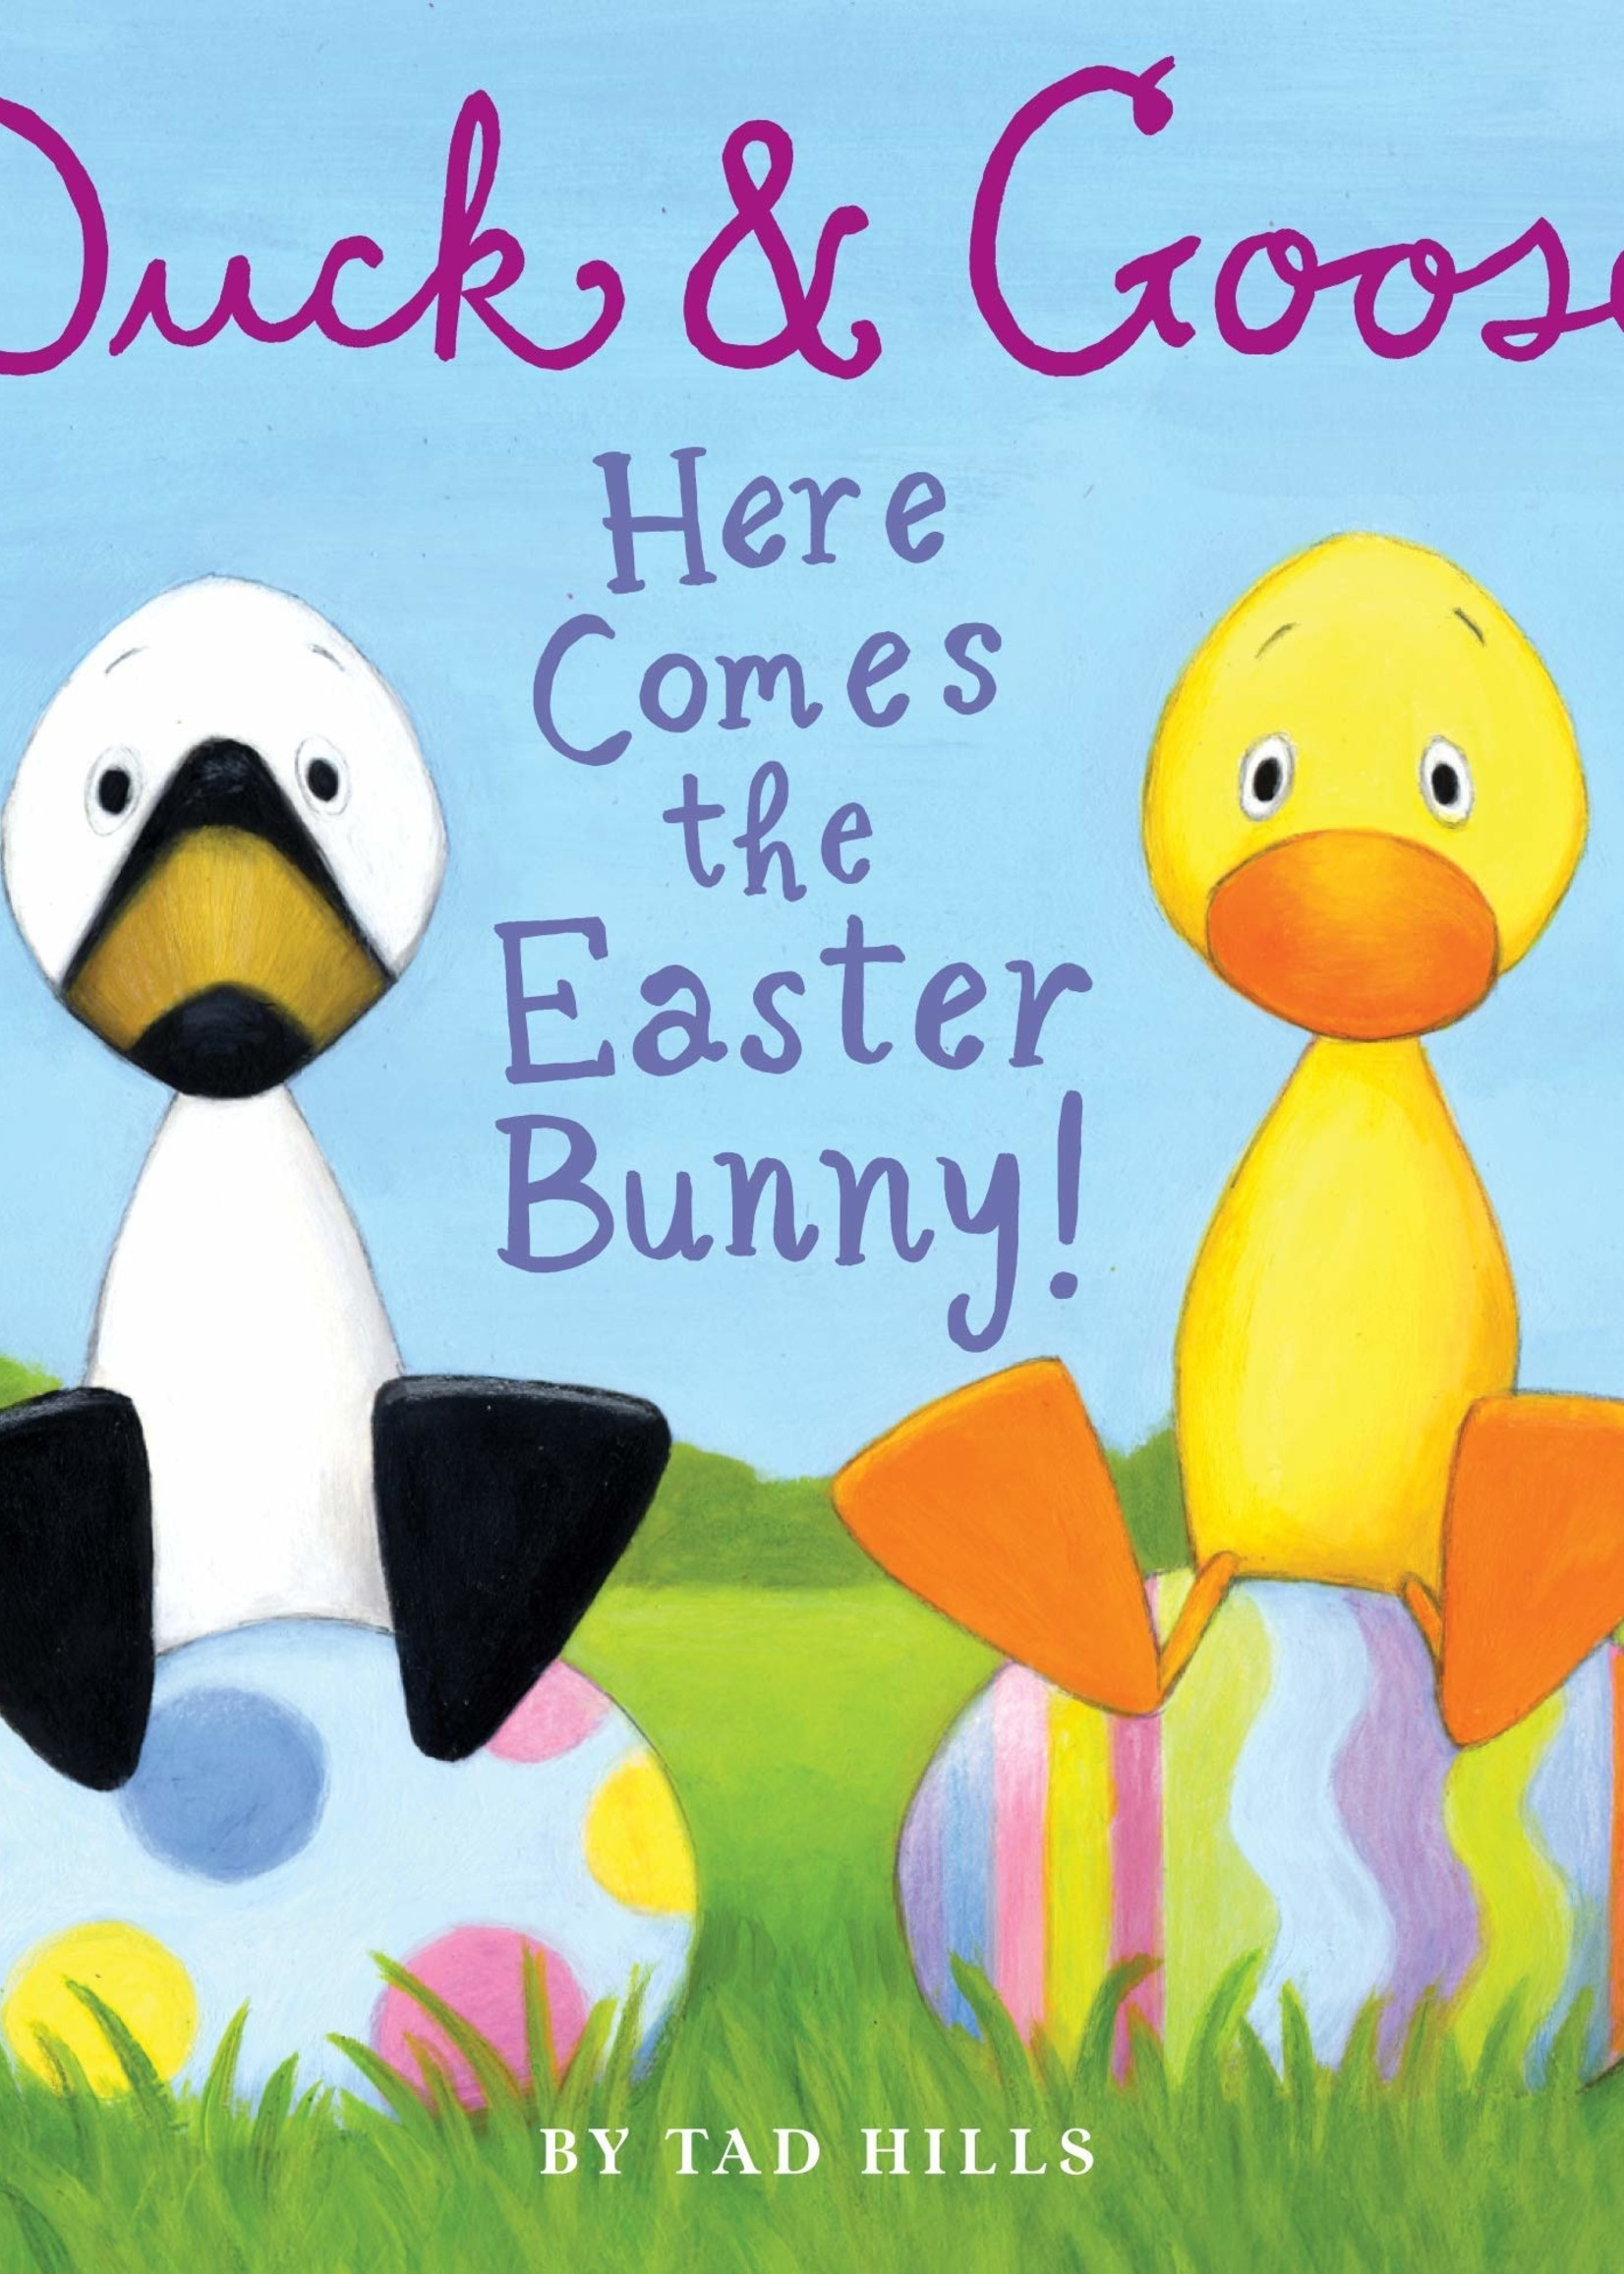 Duck & Goose, Here Comes the Easter Bunny - Board Book